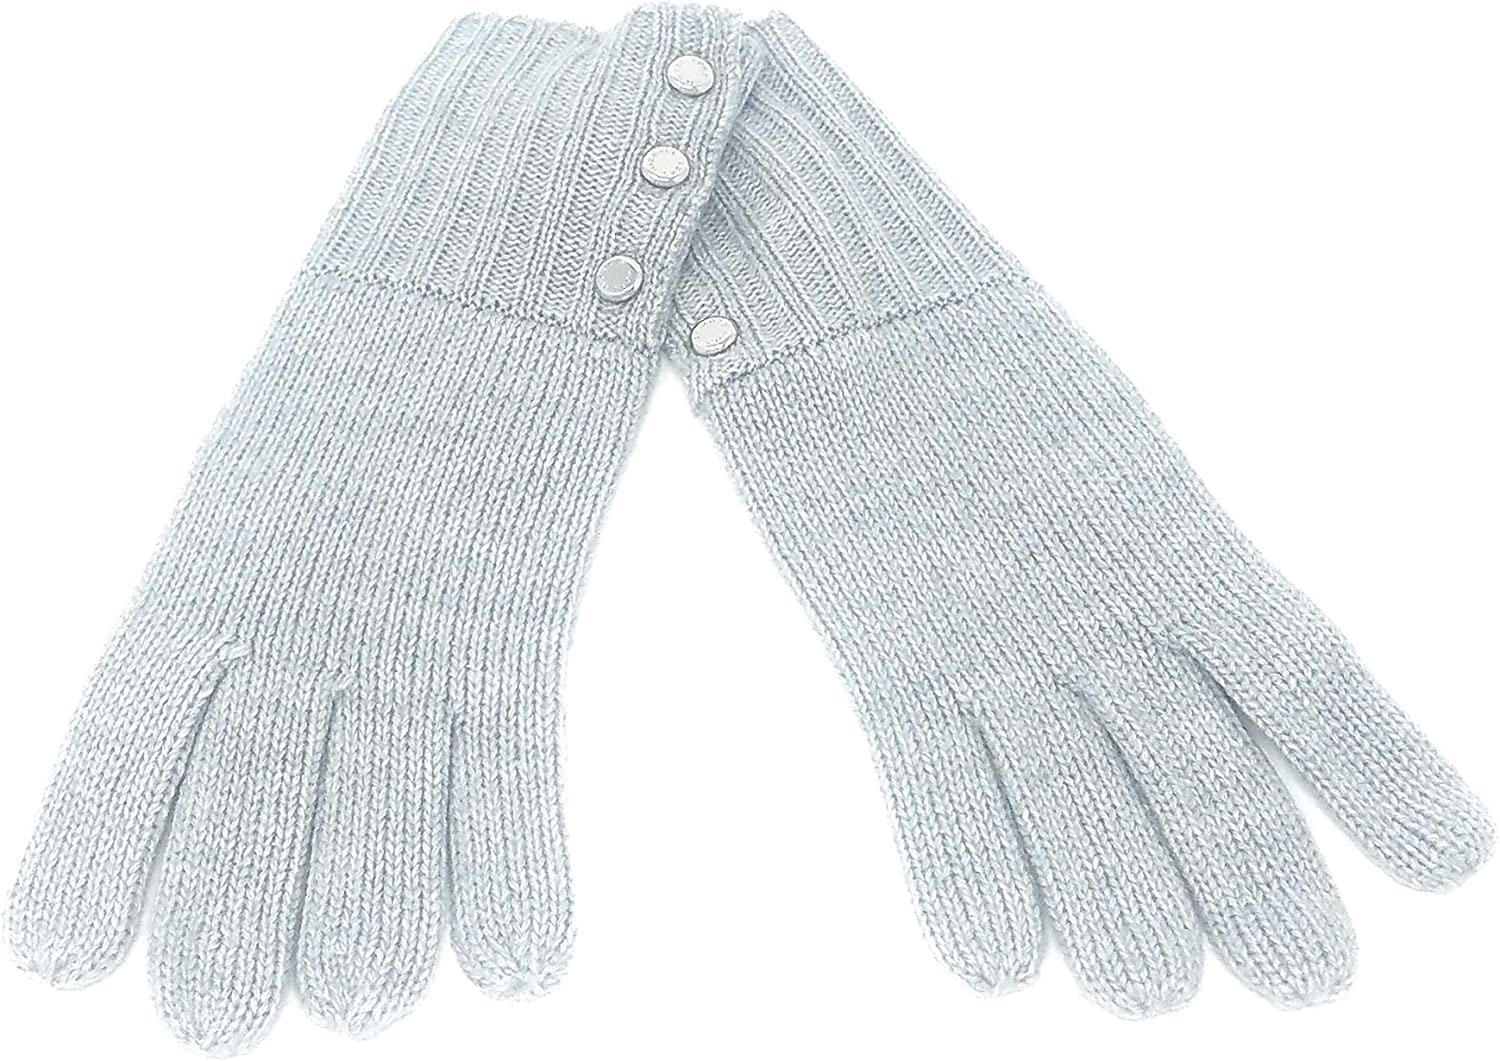 Michael Kors Grey Gloves With Silver Buttons, One Size